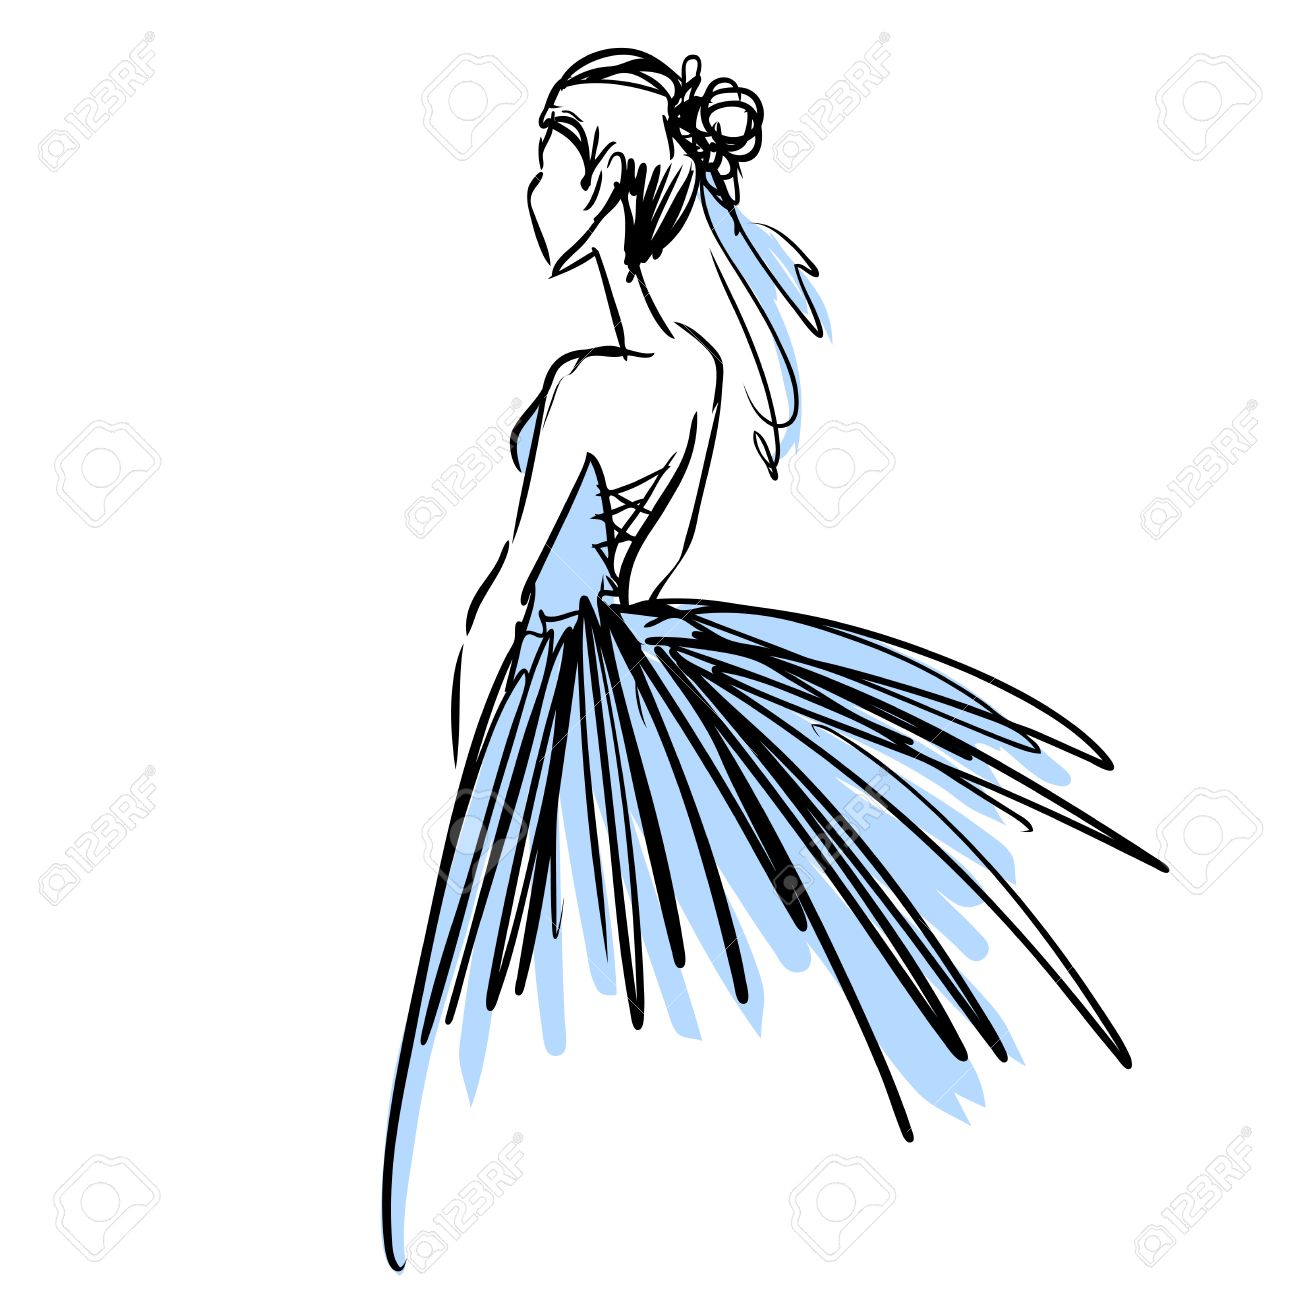 Slender Elegant Ballerina In Evening Dress. Fashion Sketch, Scribble ...